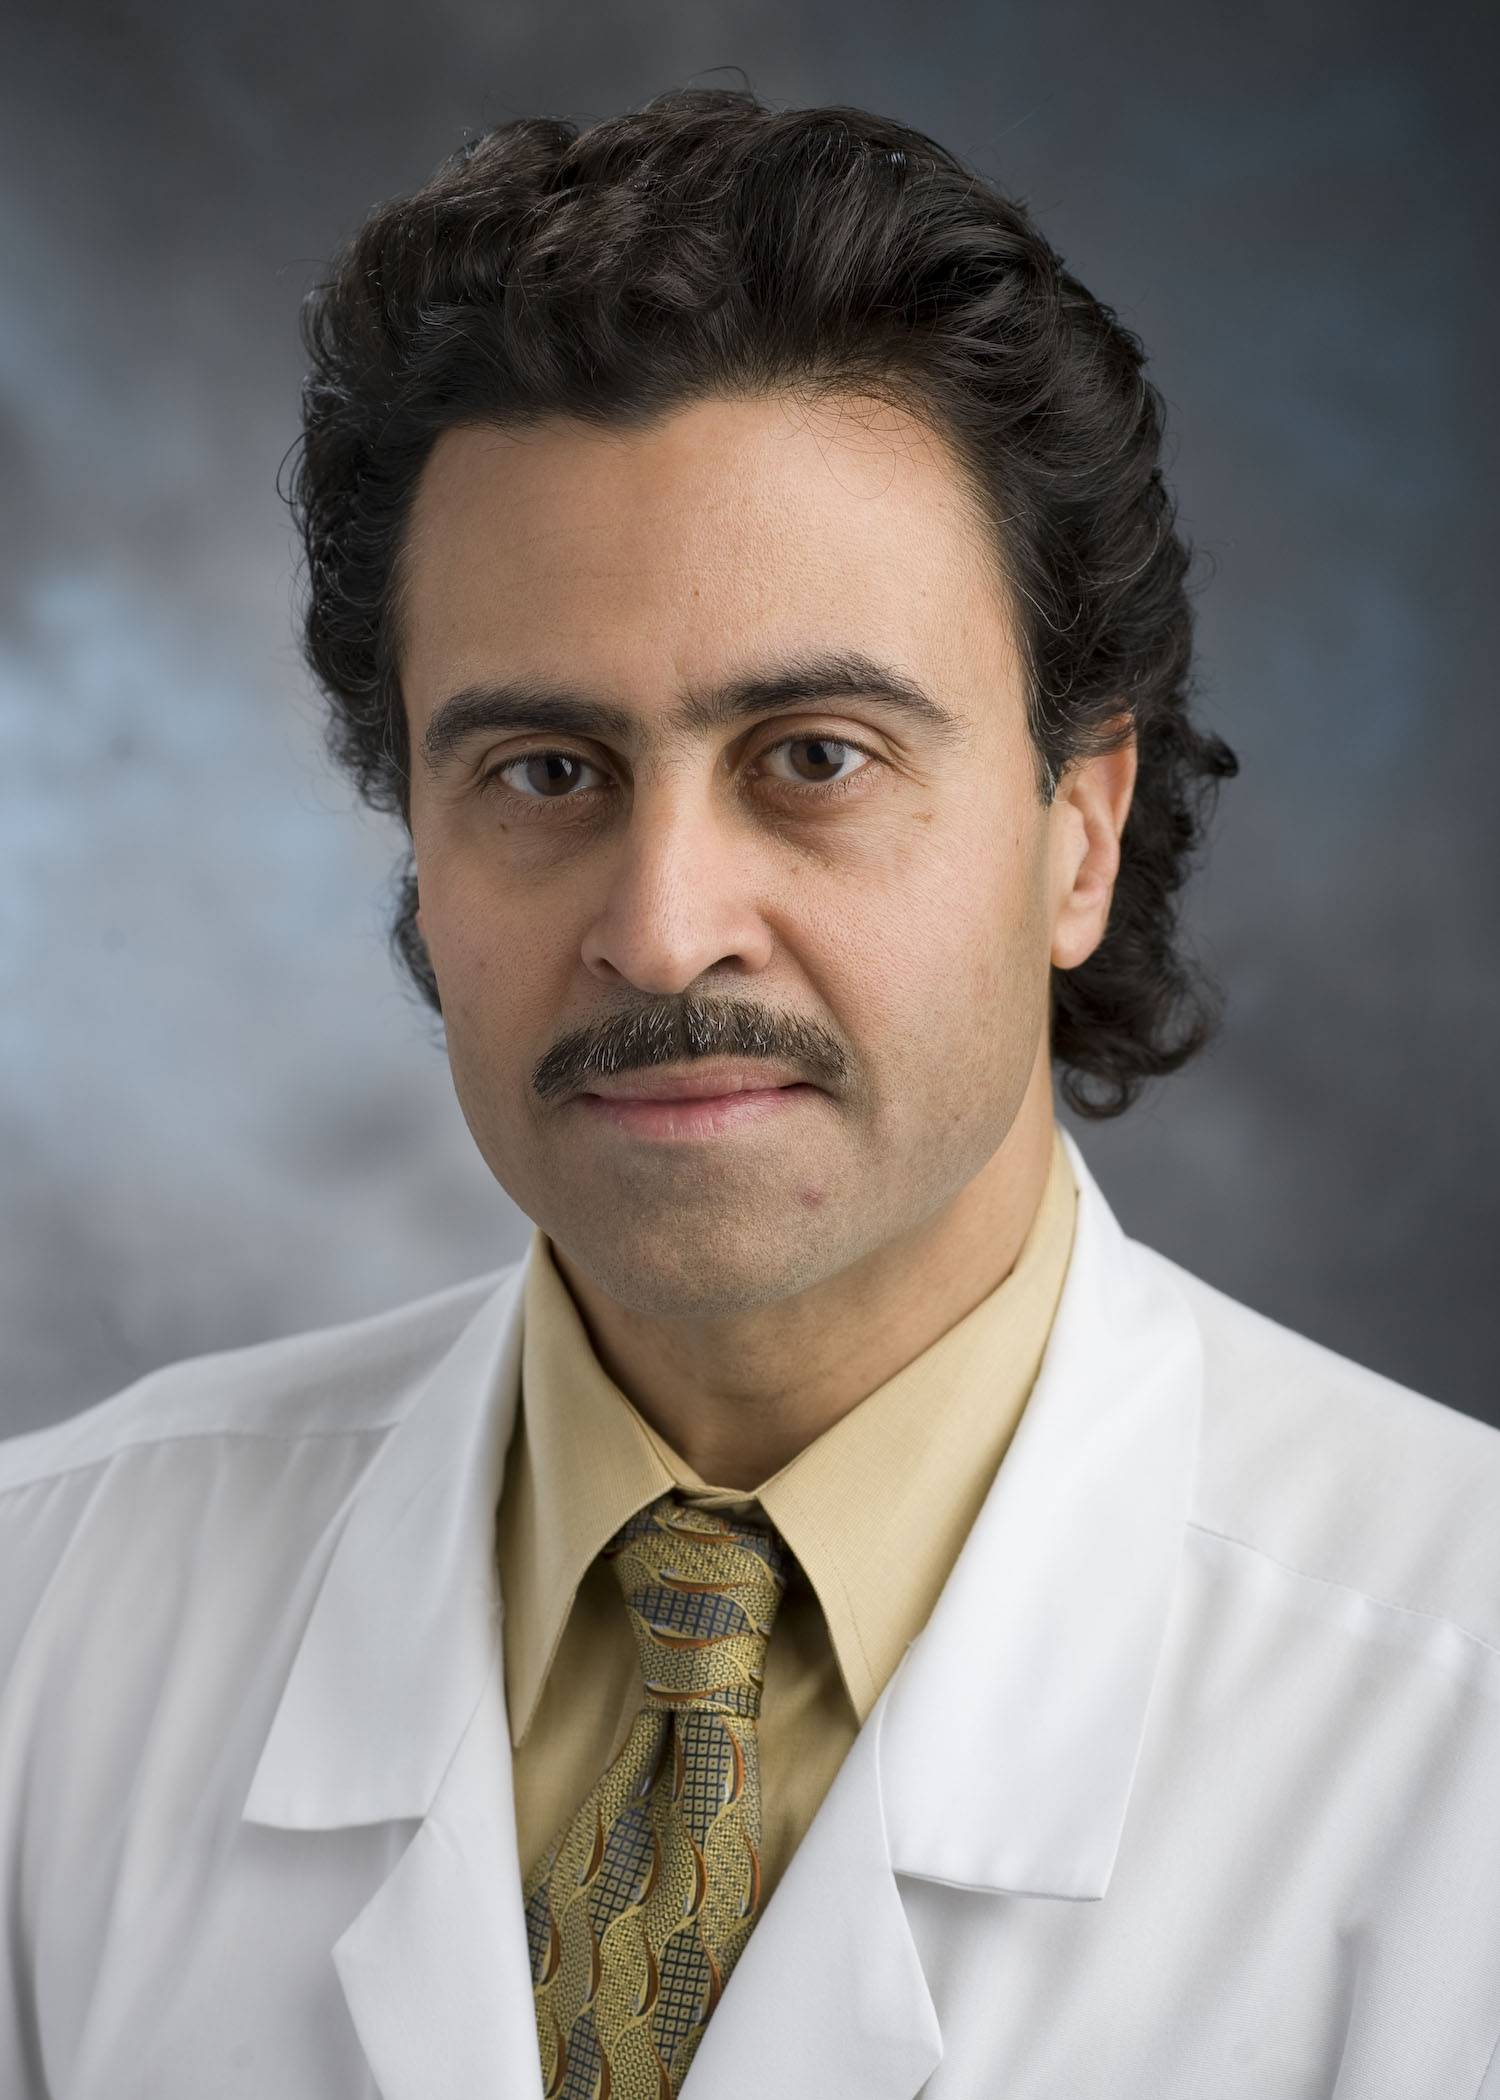 Michael Fortsas, MD